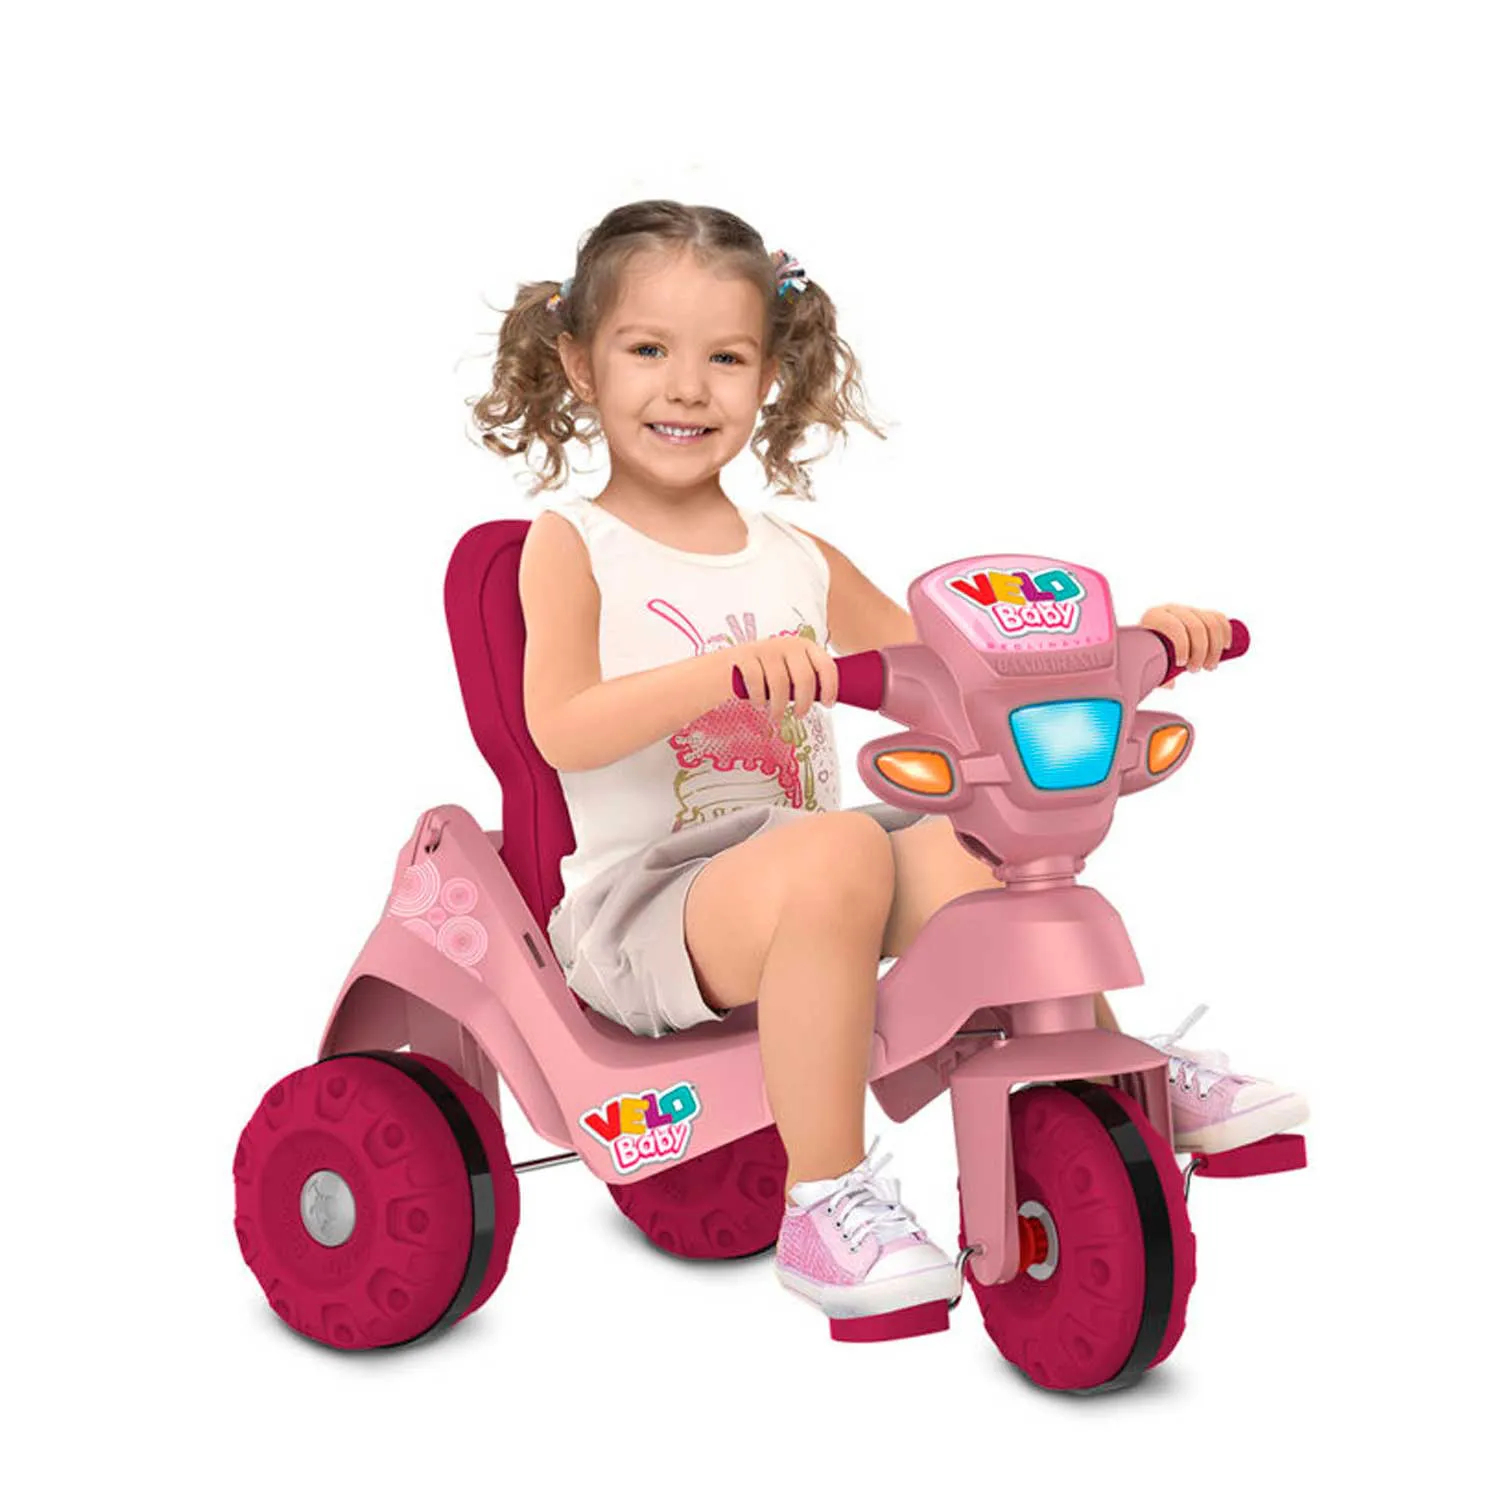 TRICICLO A PEDAL VELOBABY RECLINAVEL PASSEIO BANDEIRANTE REF:213